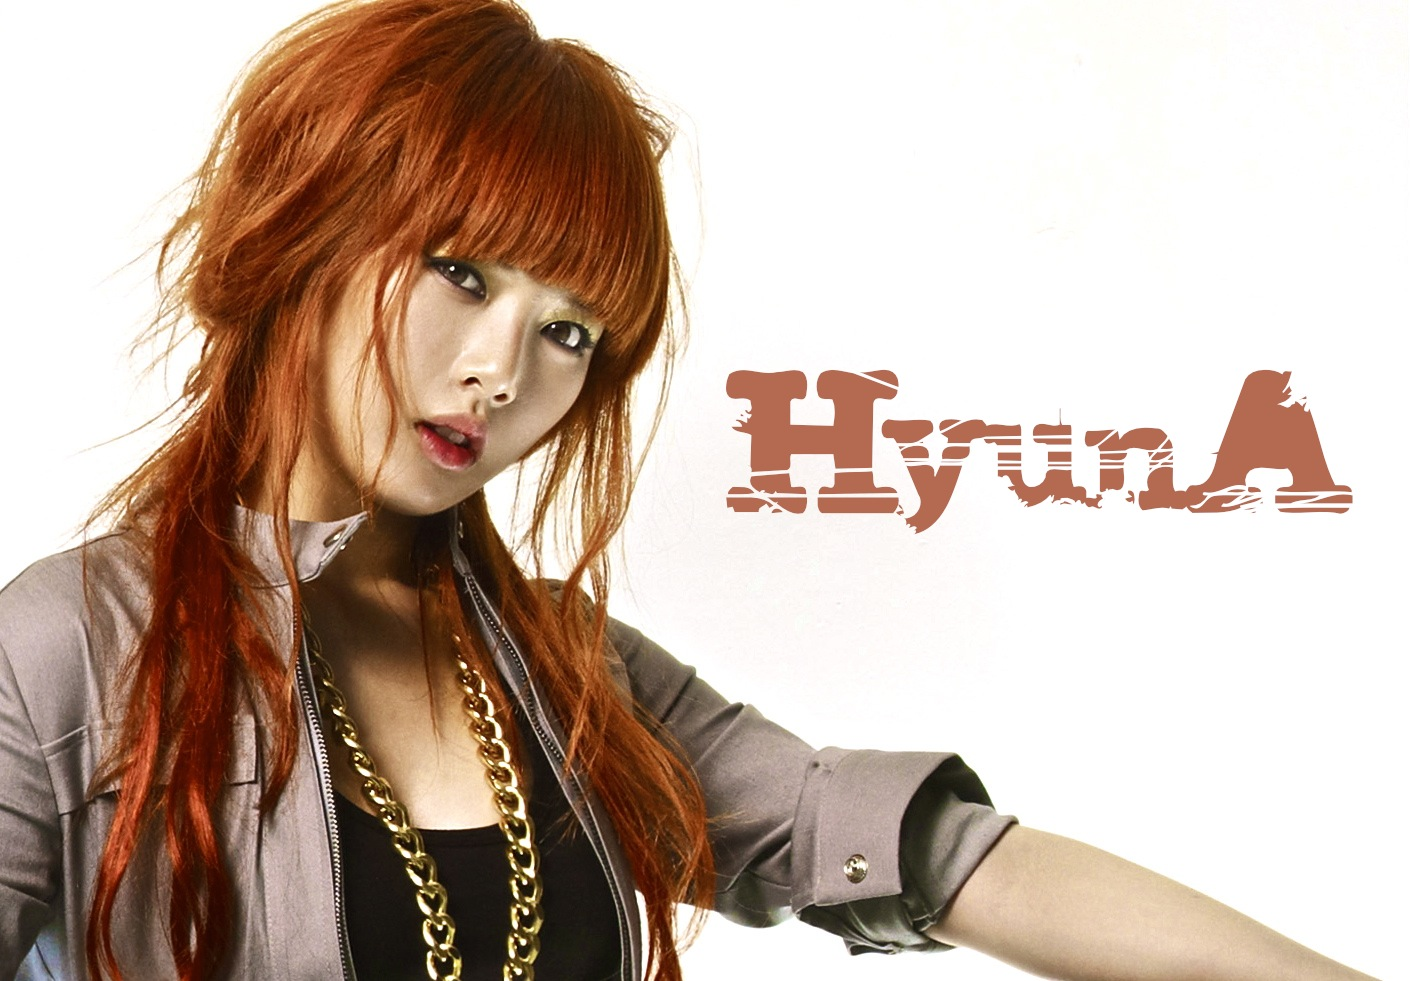 Cute Girl Wallpaper For Profile Pic Hyuna Profile Kpop Music